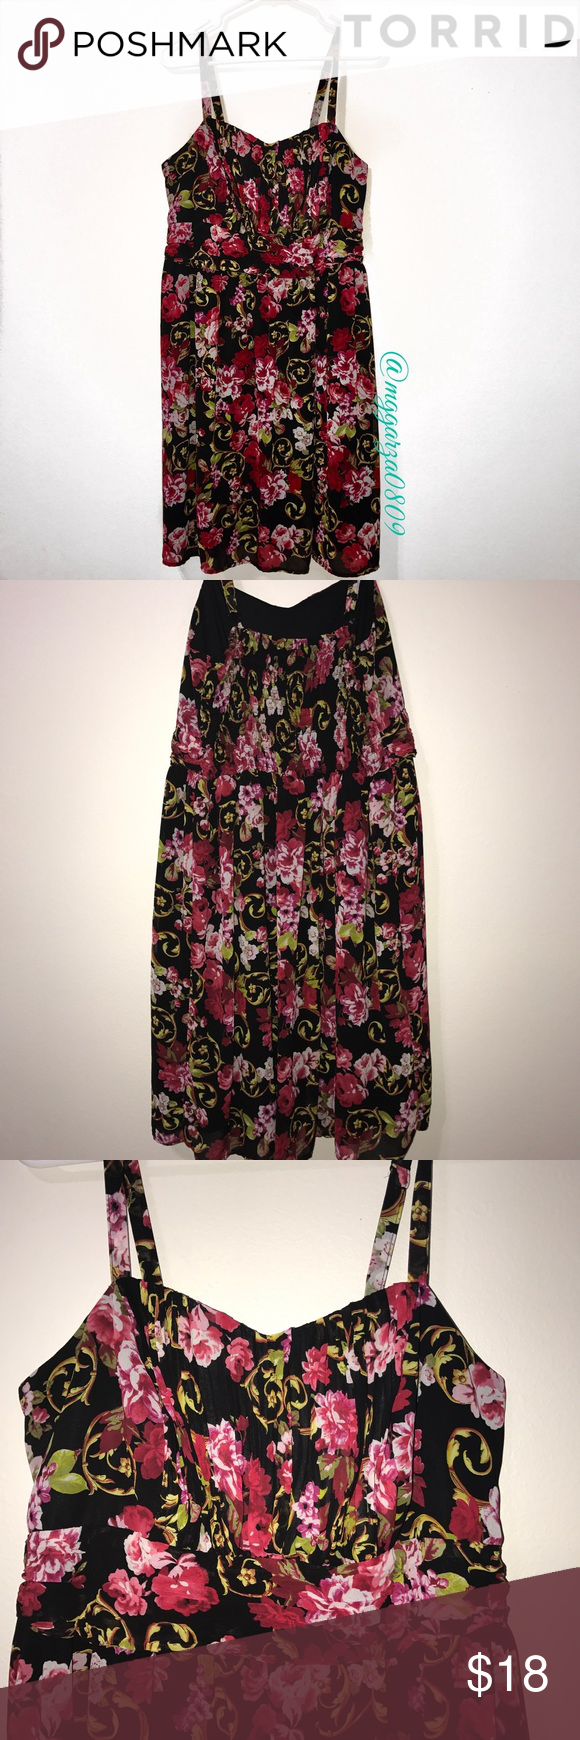 Torrid floral dress Size 2 or in Torrid sizes approx an 18/20 or 2X---spaghetti strap adjustable straps torrid Dresses